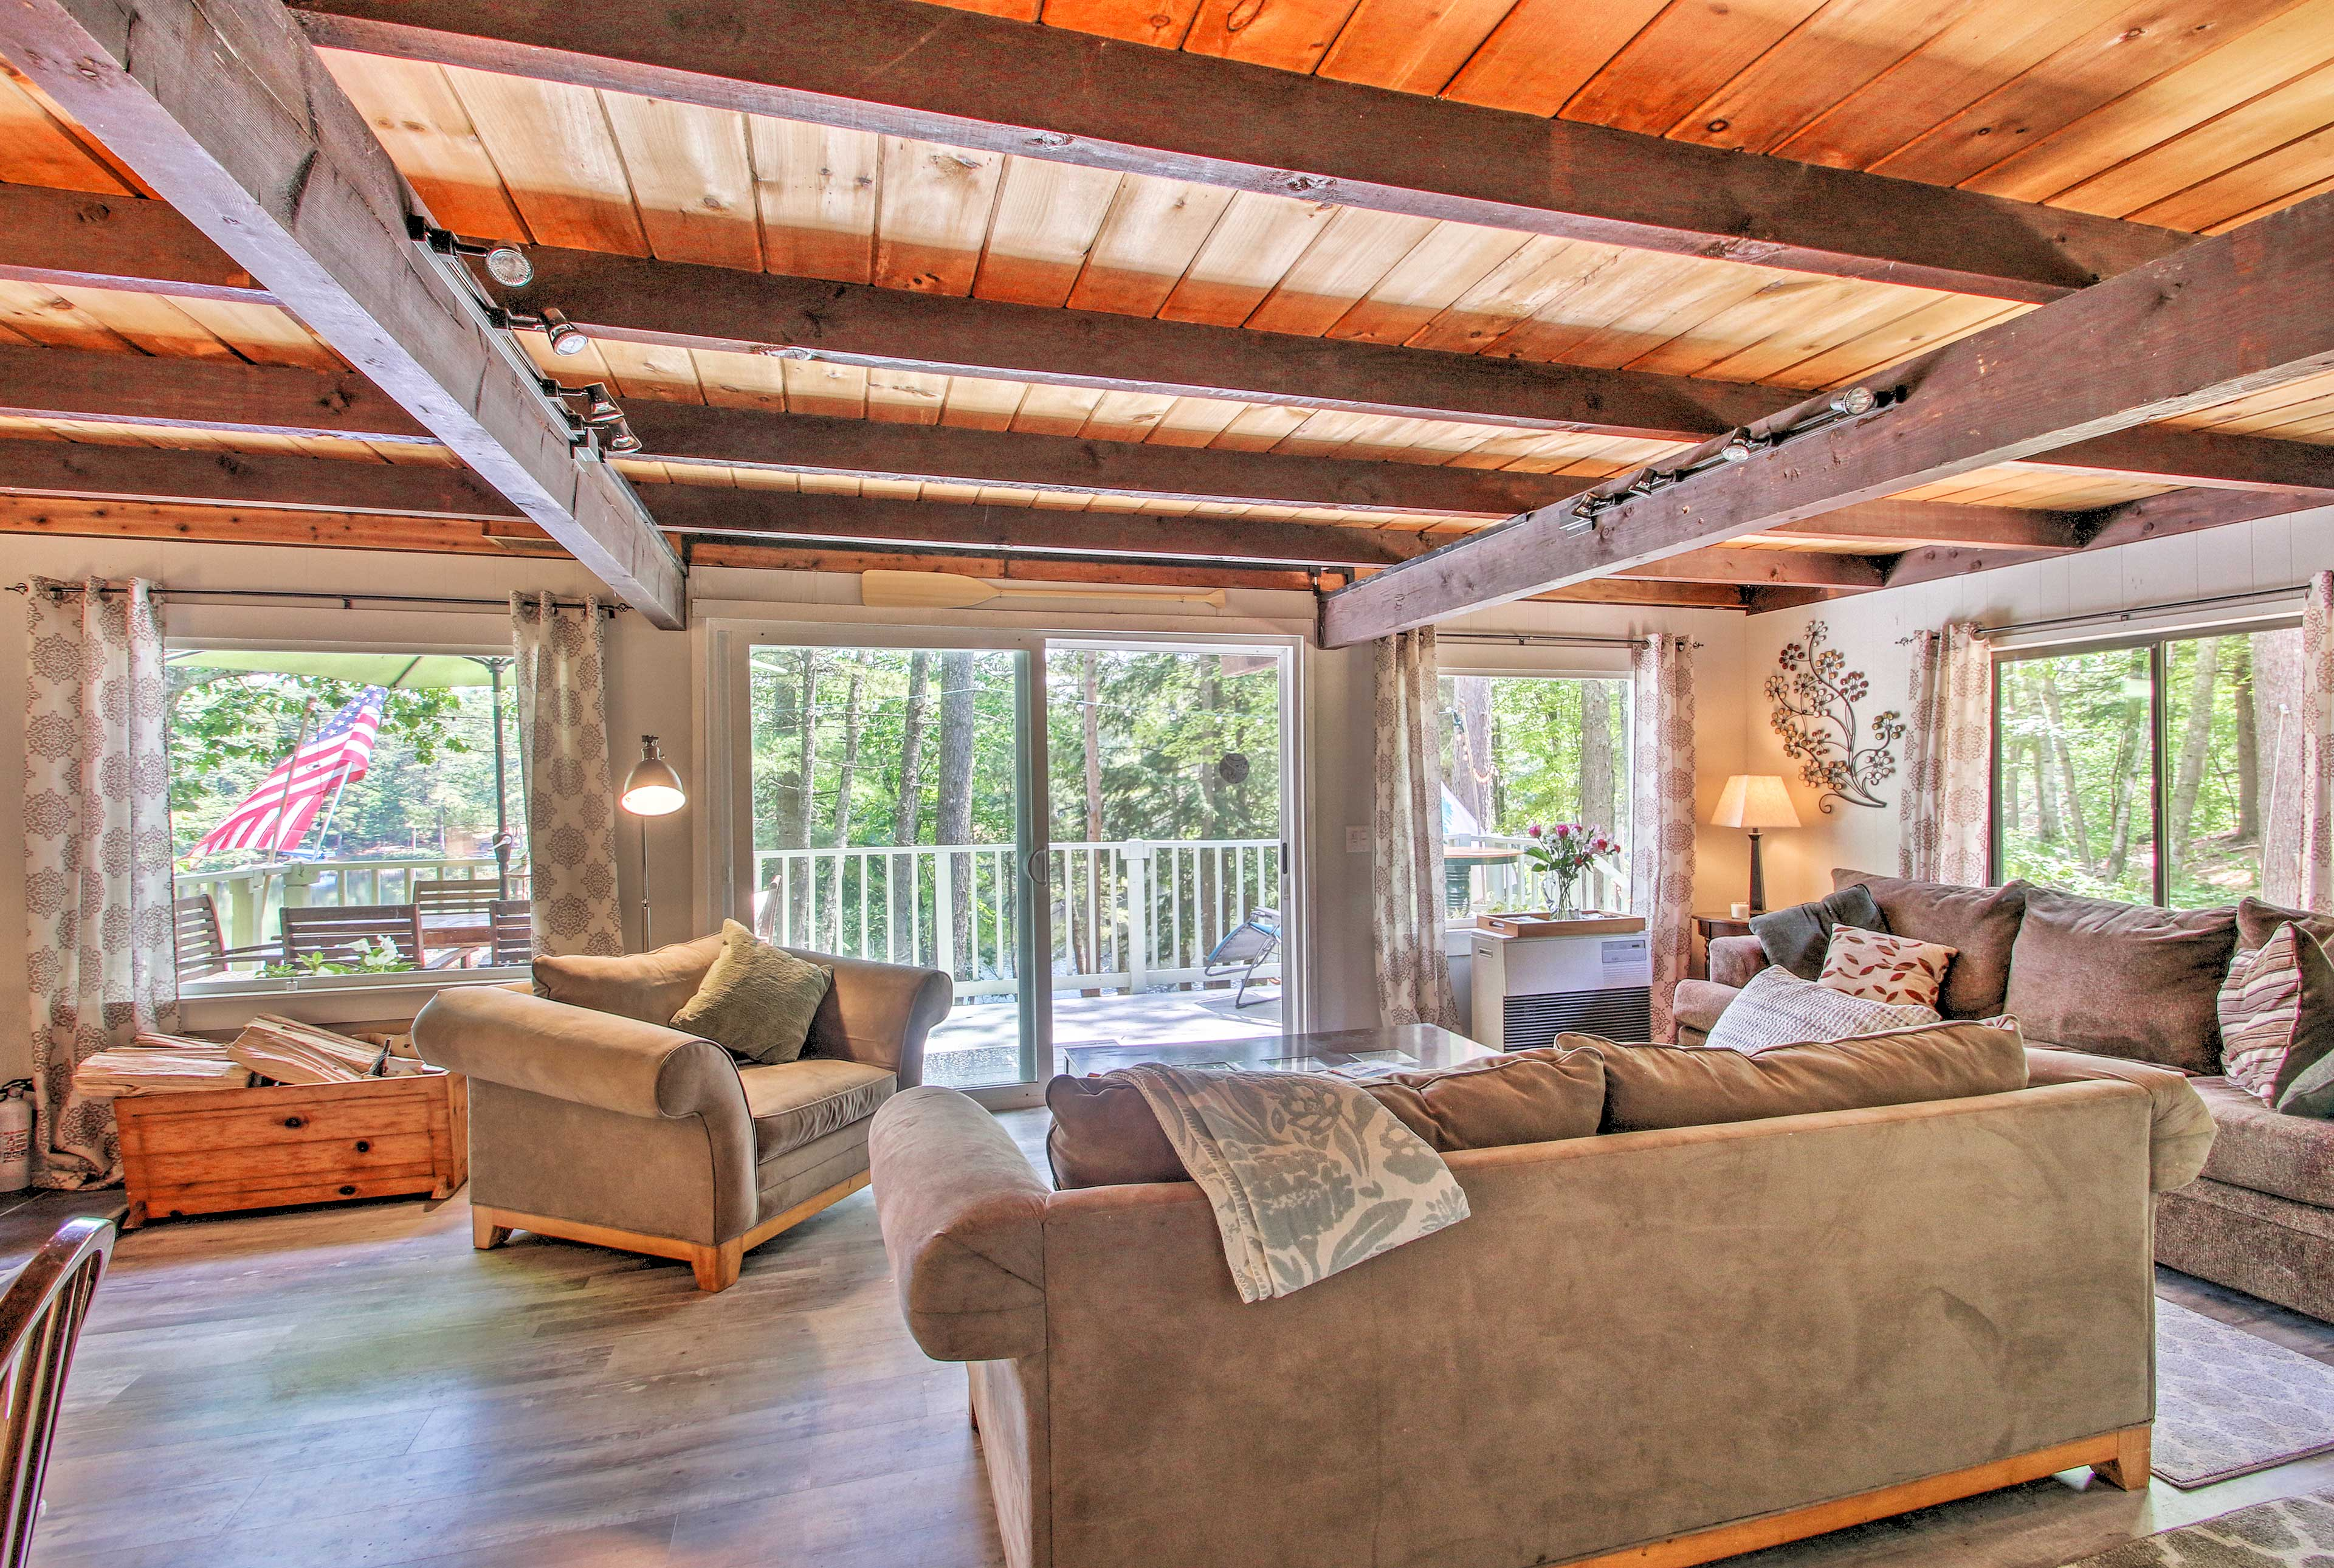 Relax and unwind with family and friends at this cozy vacation rental.